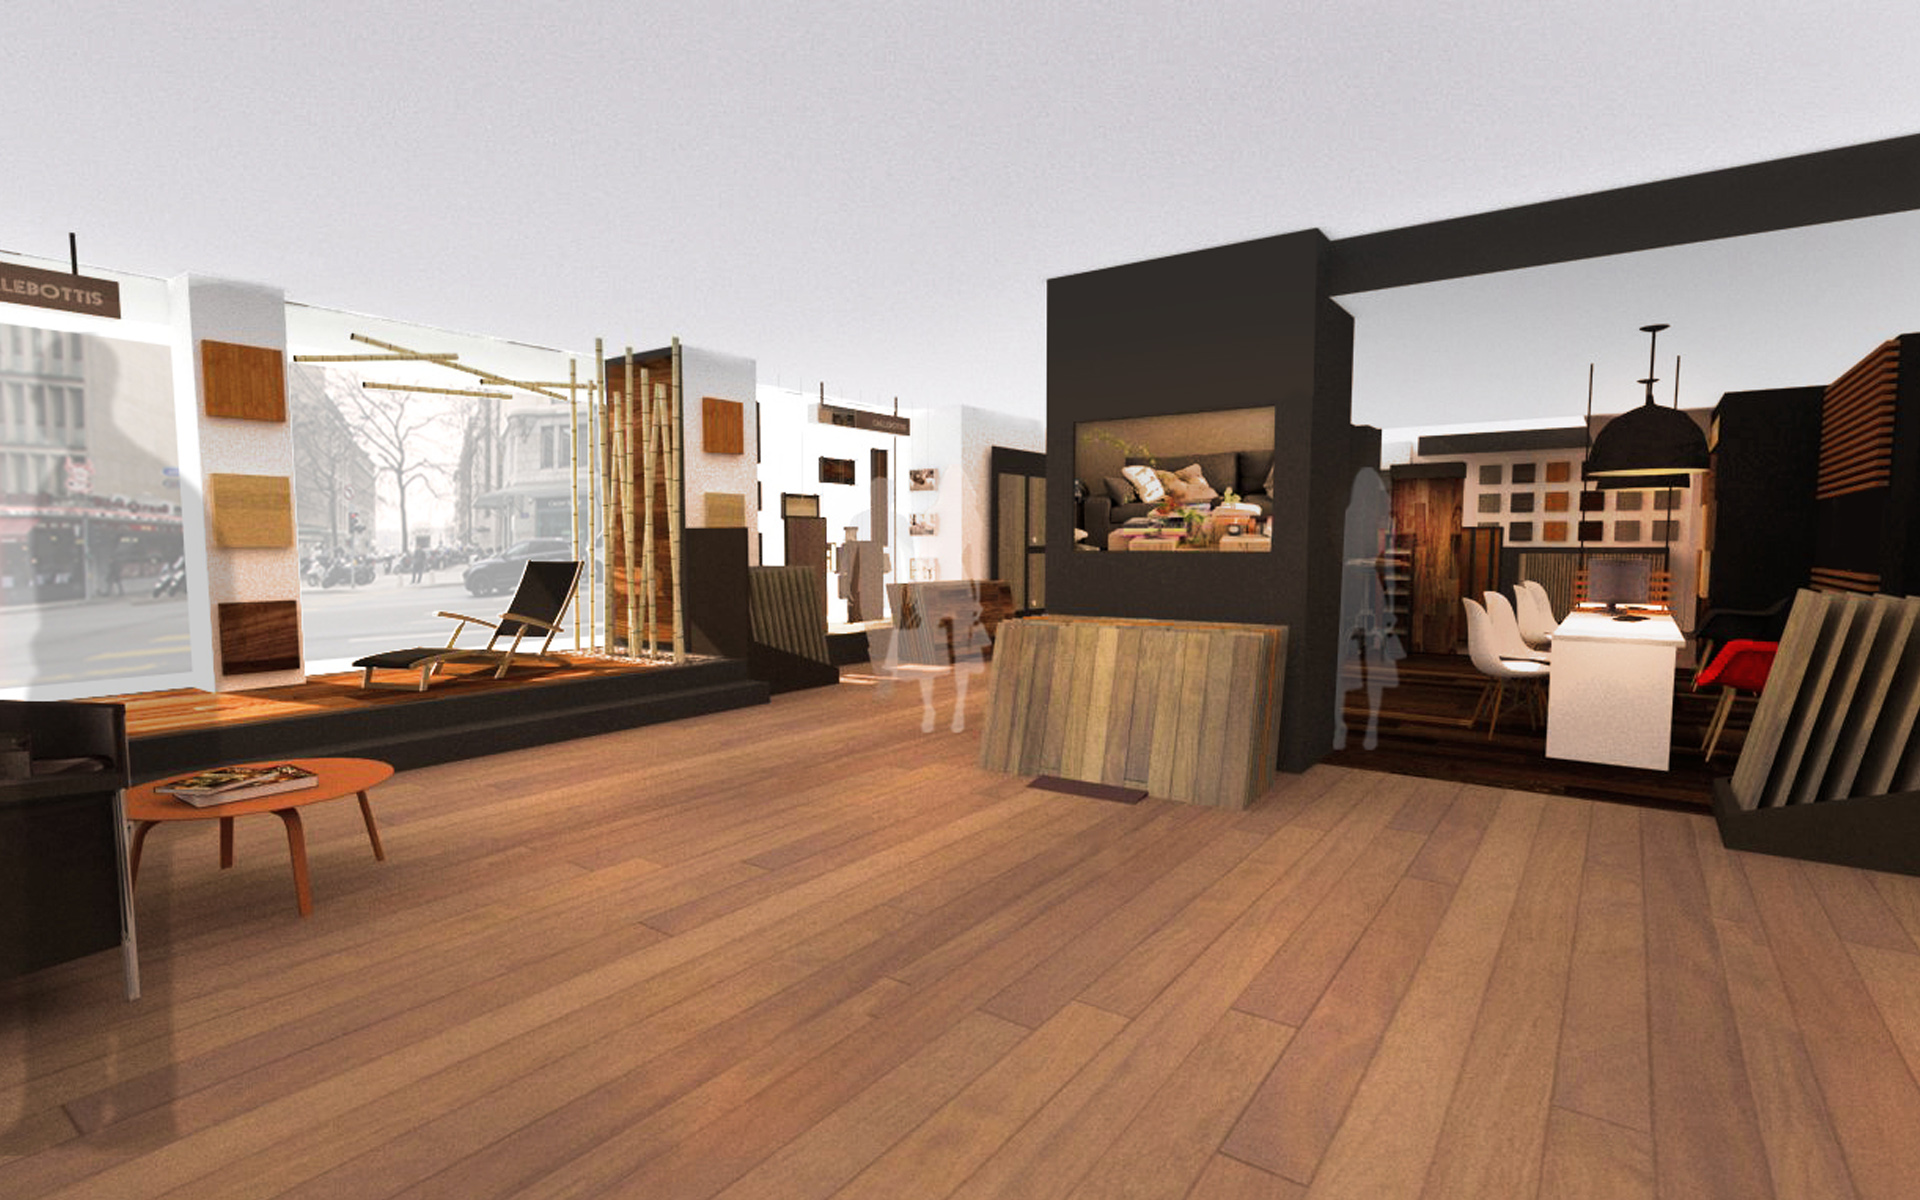 boutique de parquet gen ve red banana studio concepteur d 39 int rieur. Black Bedroom Furniture Sets. Home Design Ideas